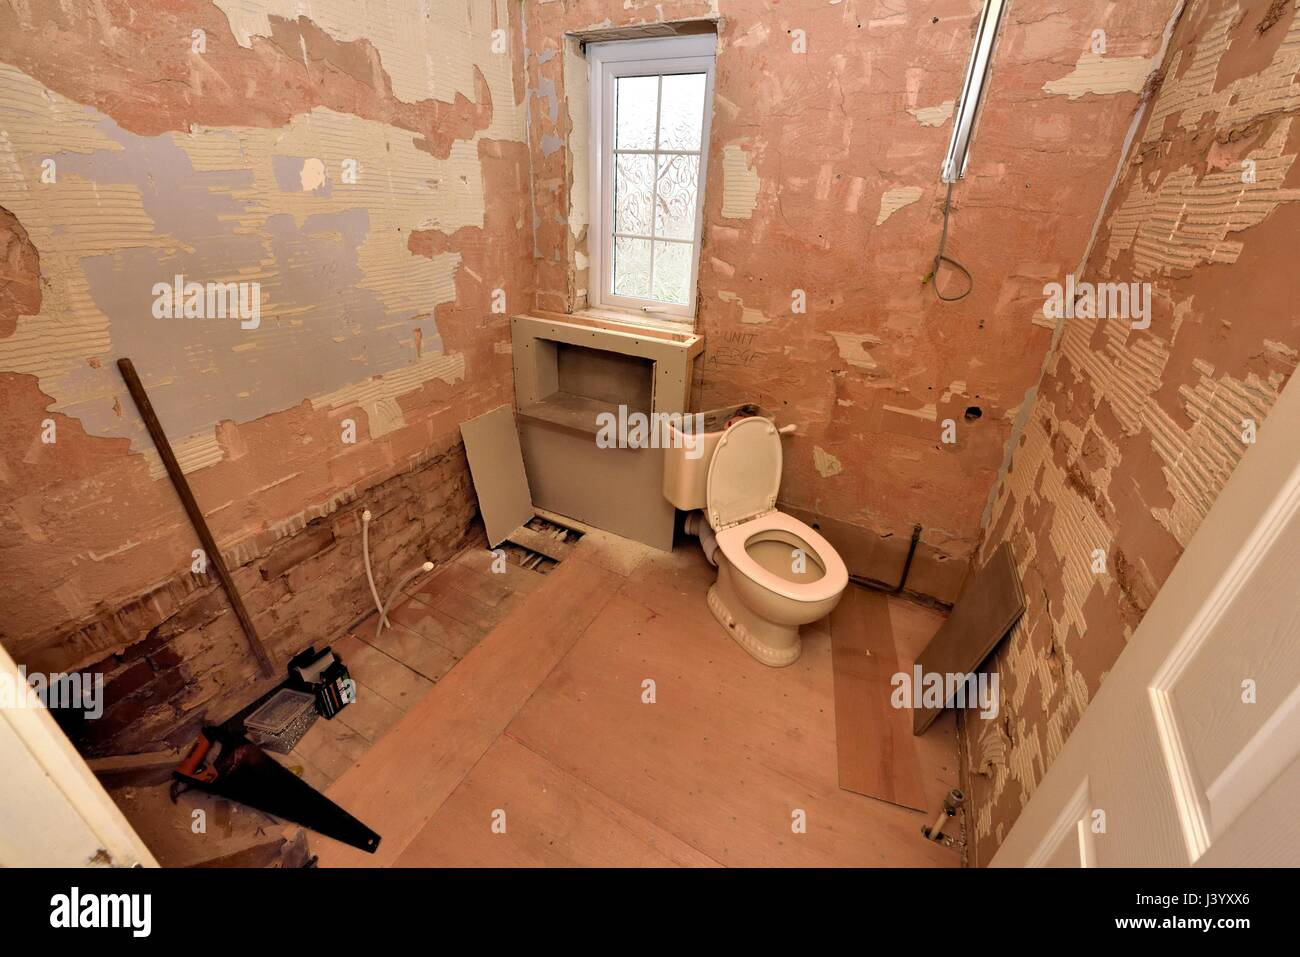 Bathroom Renovation During Pictures Stock Photo Alamy - Bathroom renovation sequence